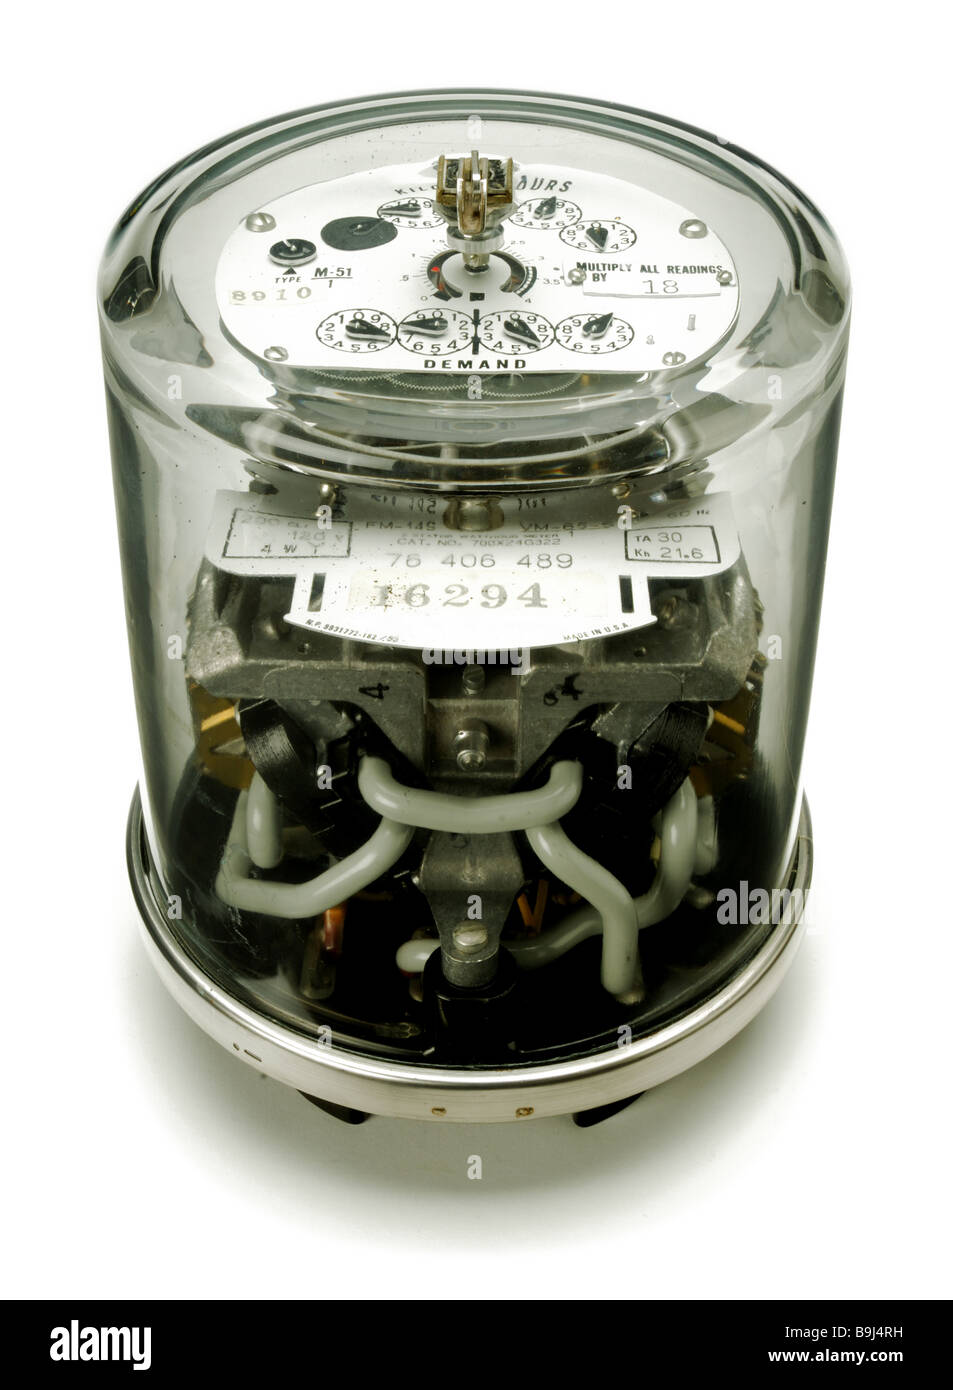 An electrical power meter seen from the side - Stock Image